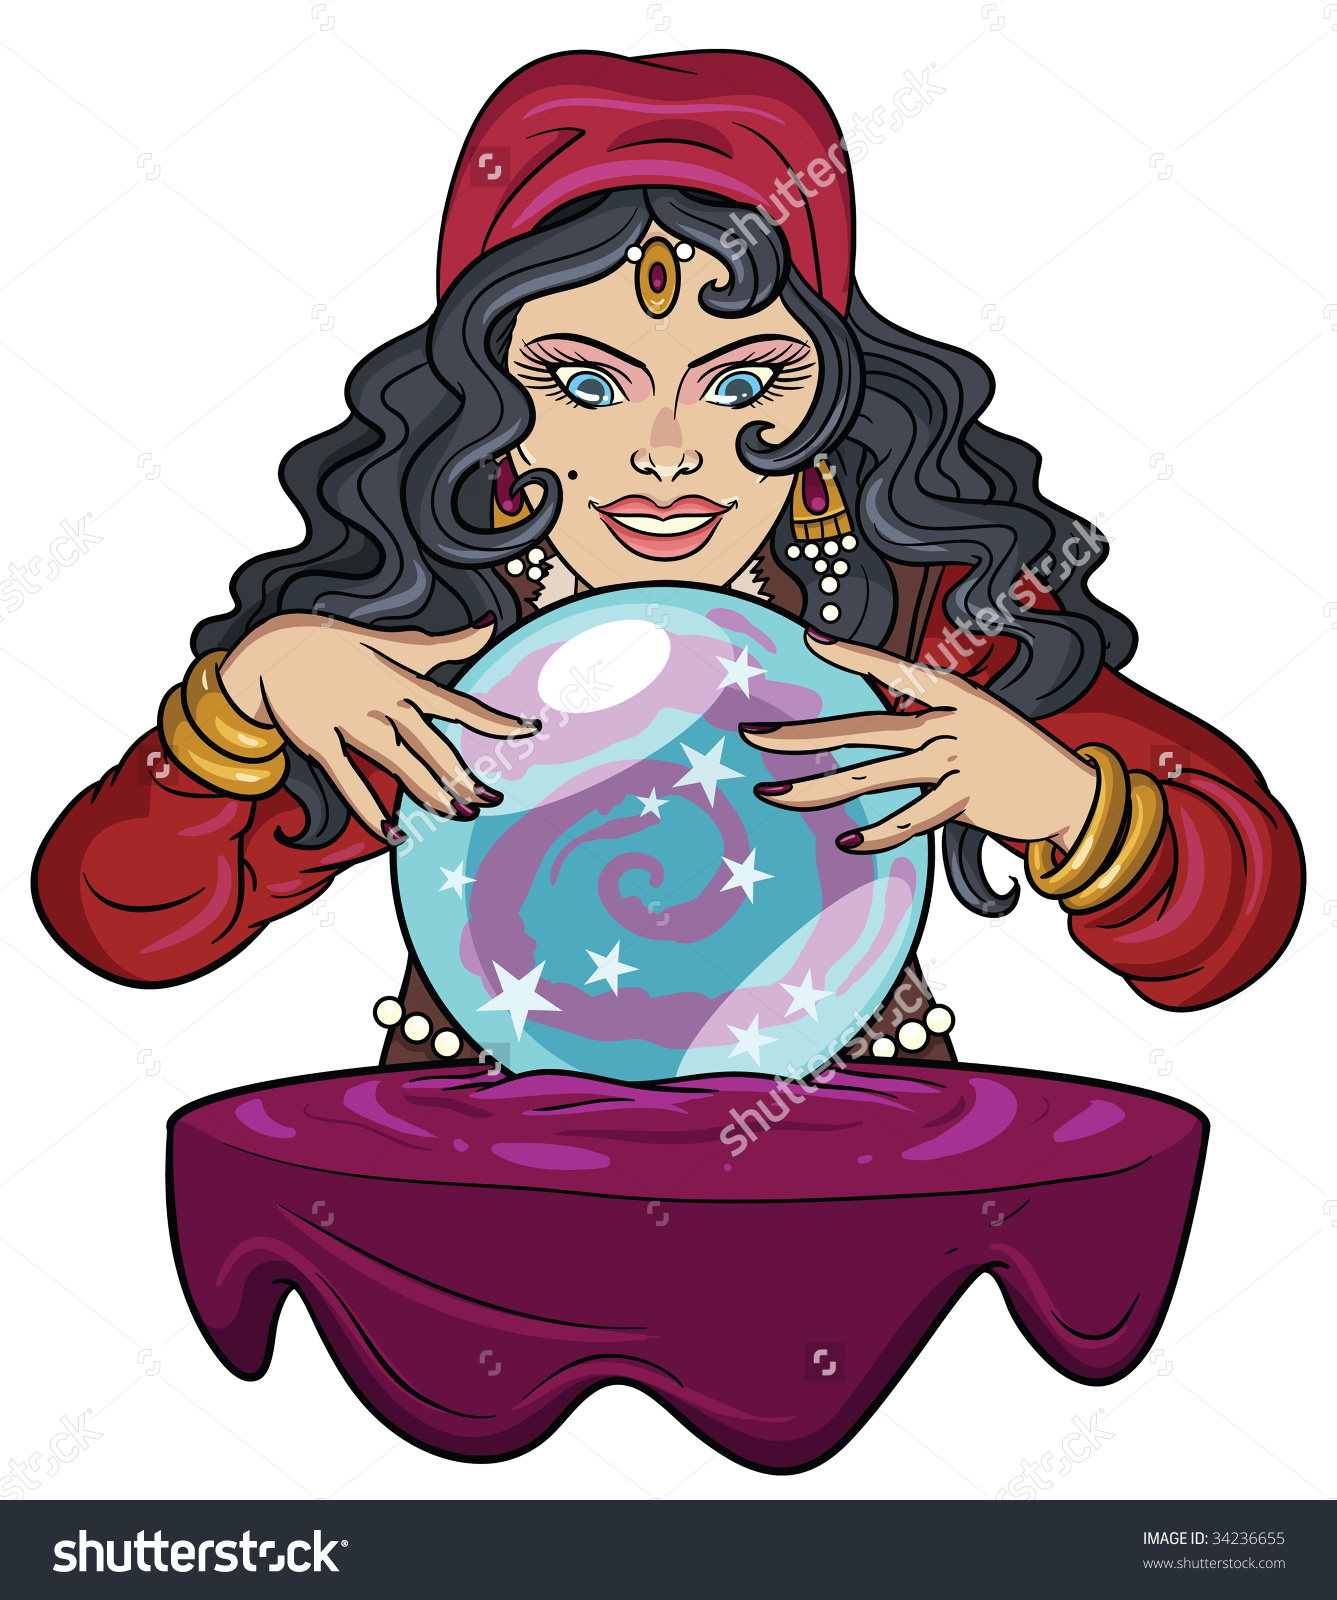 Fortune teller with crystal ball clipart.